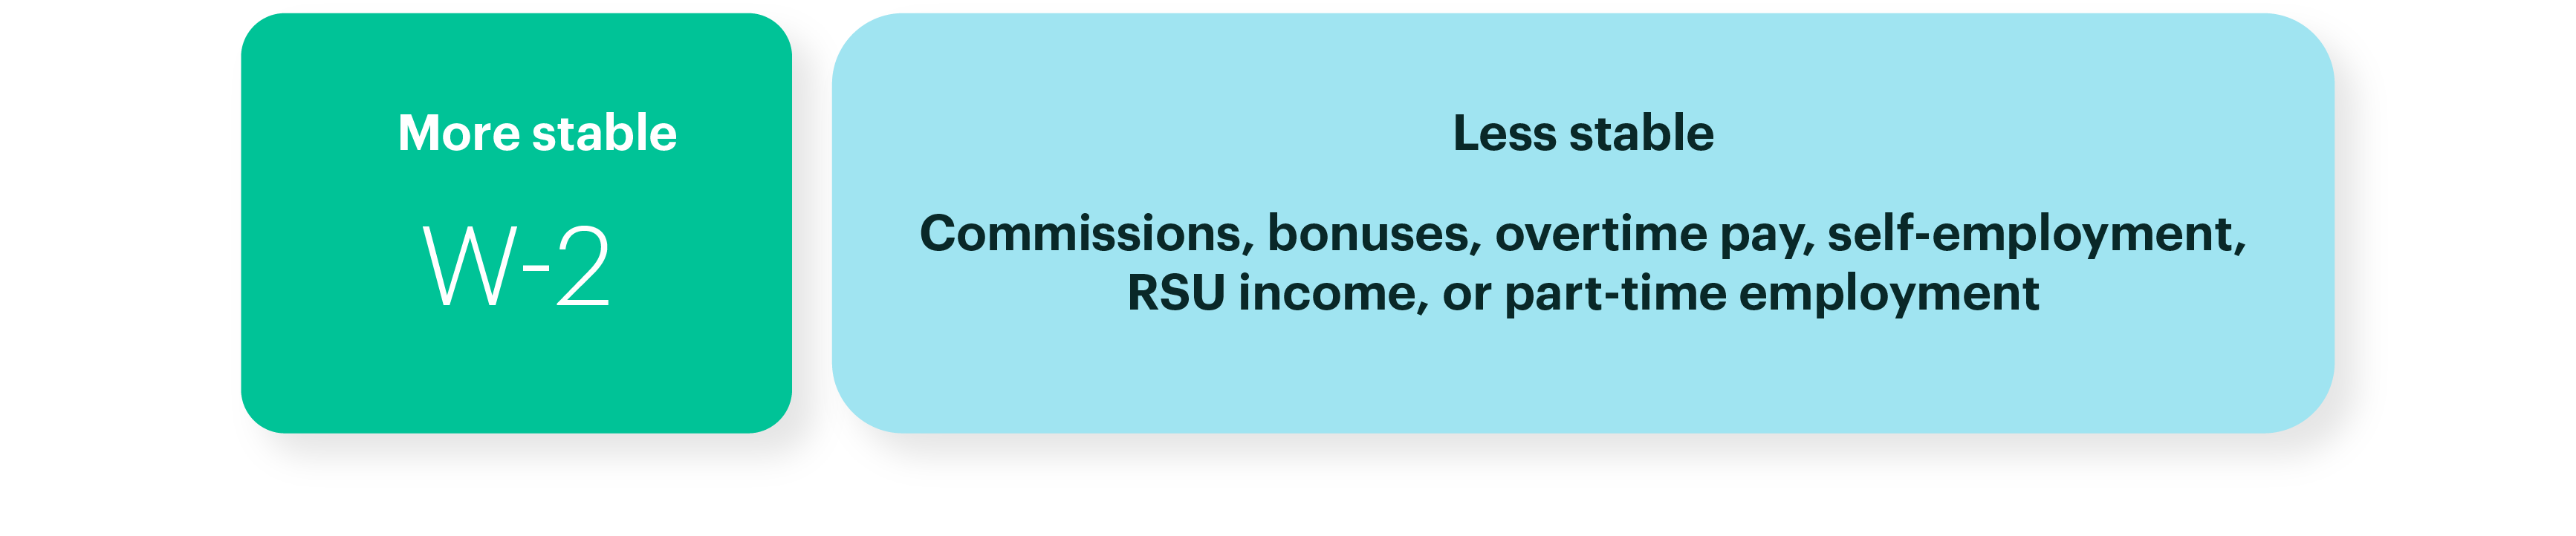 Diagram: Two Types of Pay Structures: More Stable W2 or Less Stable Commissions, Bonuses, Overtime, Self-Employment, RSU Income, or Part-Time Employment